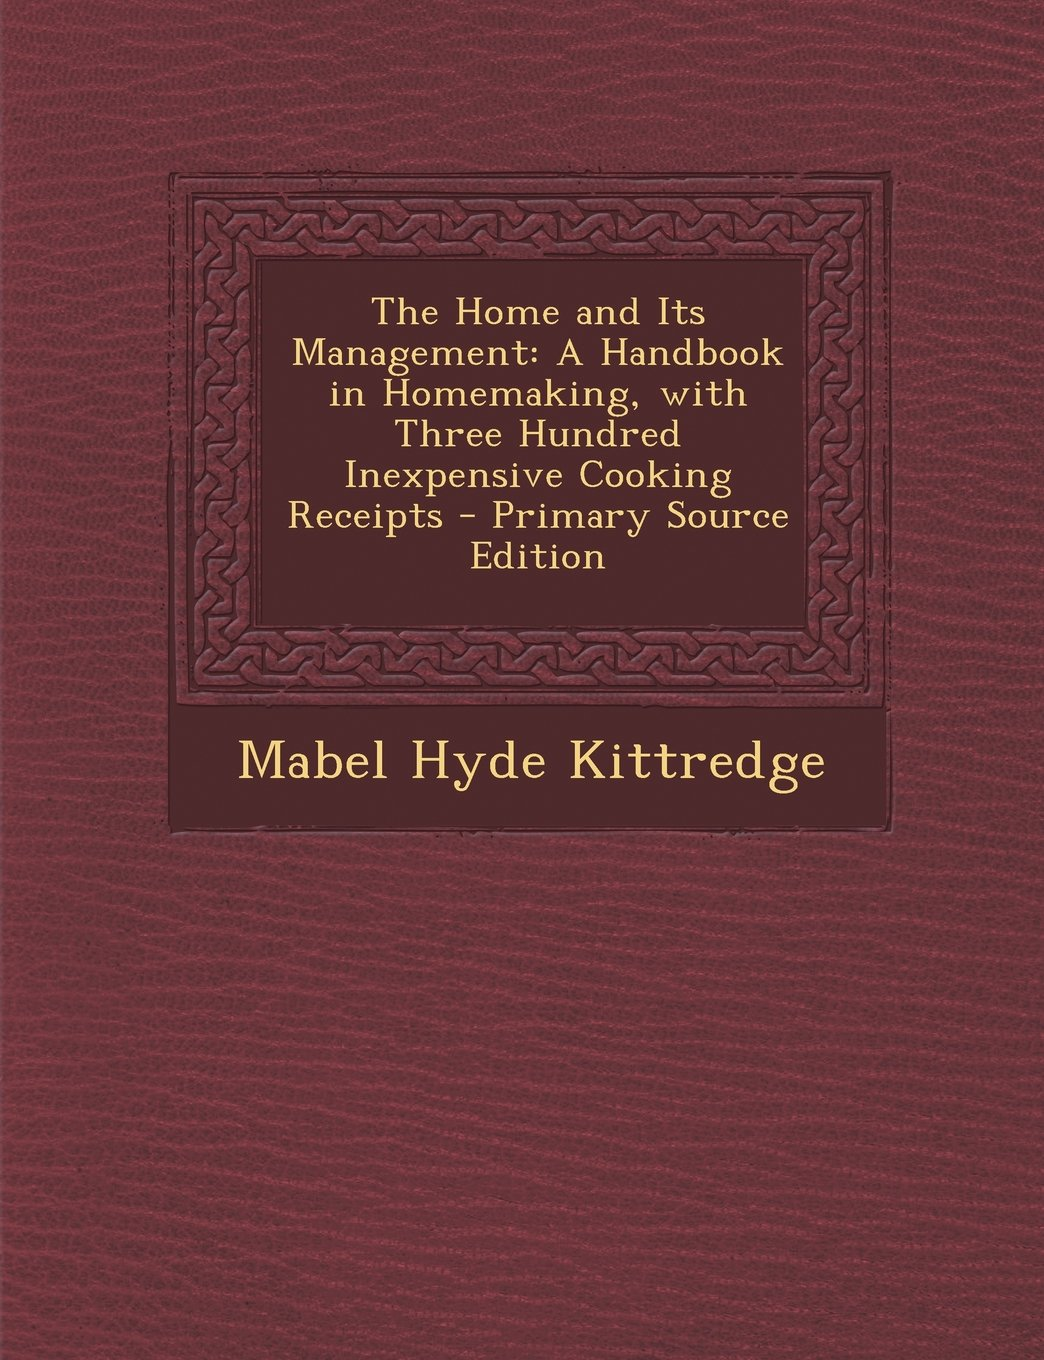 The Home and Its Management: A Handbook in Homemaking, with Three Hundred Inexpensive Cooking Receipts - Primary Source Edition ebook